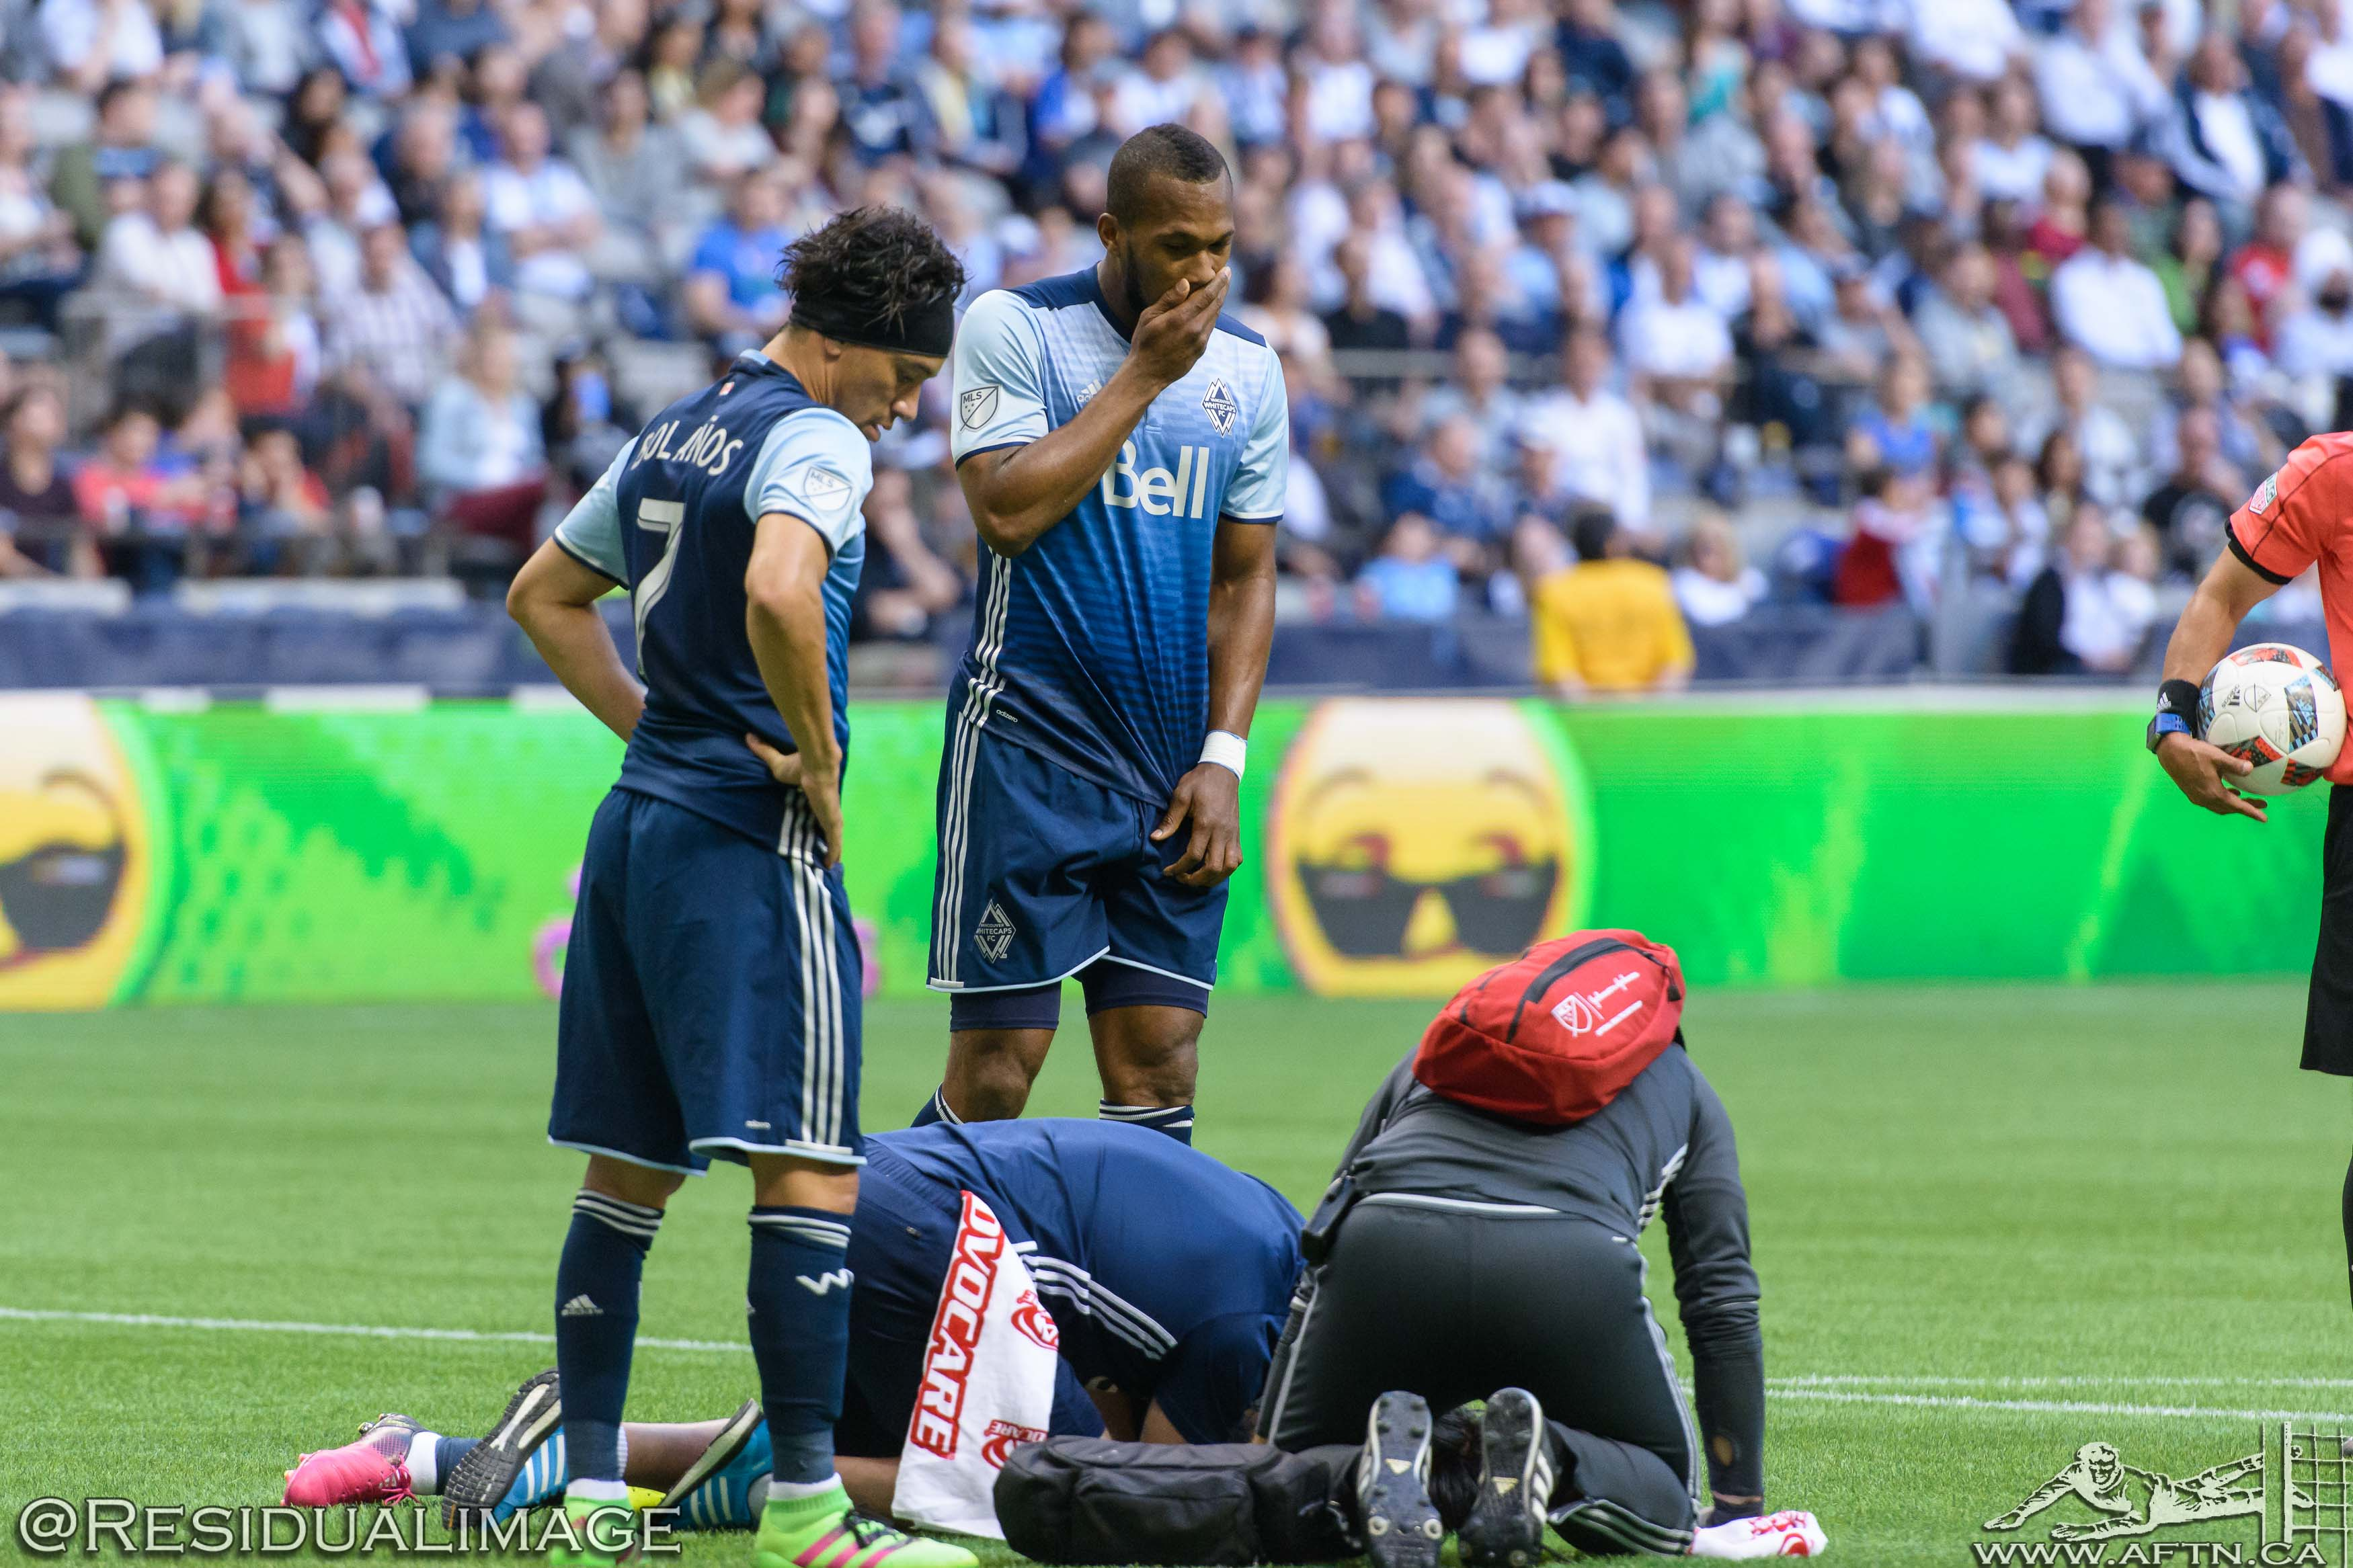 Vancouver Whitecaps v Chicago Fire - 11052016 (50)